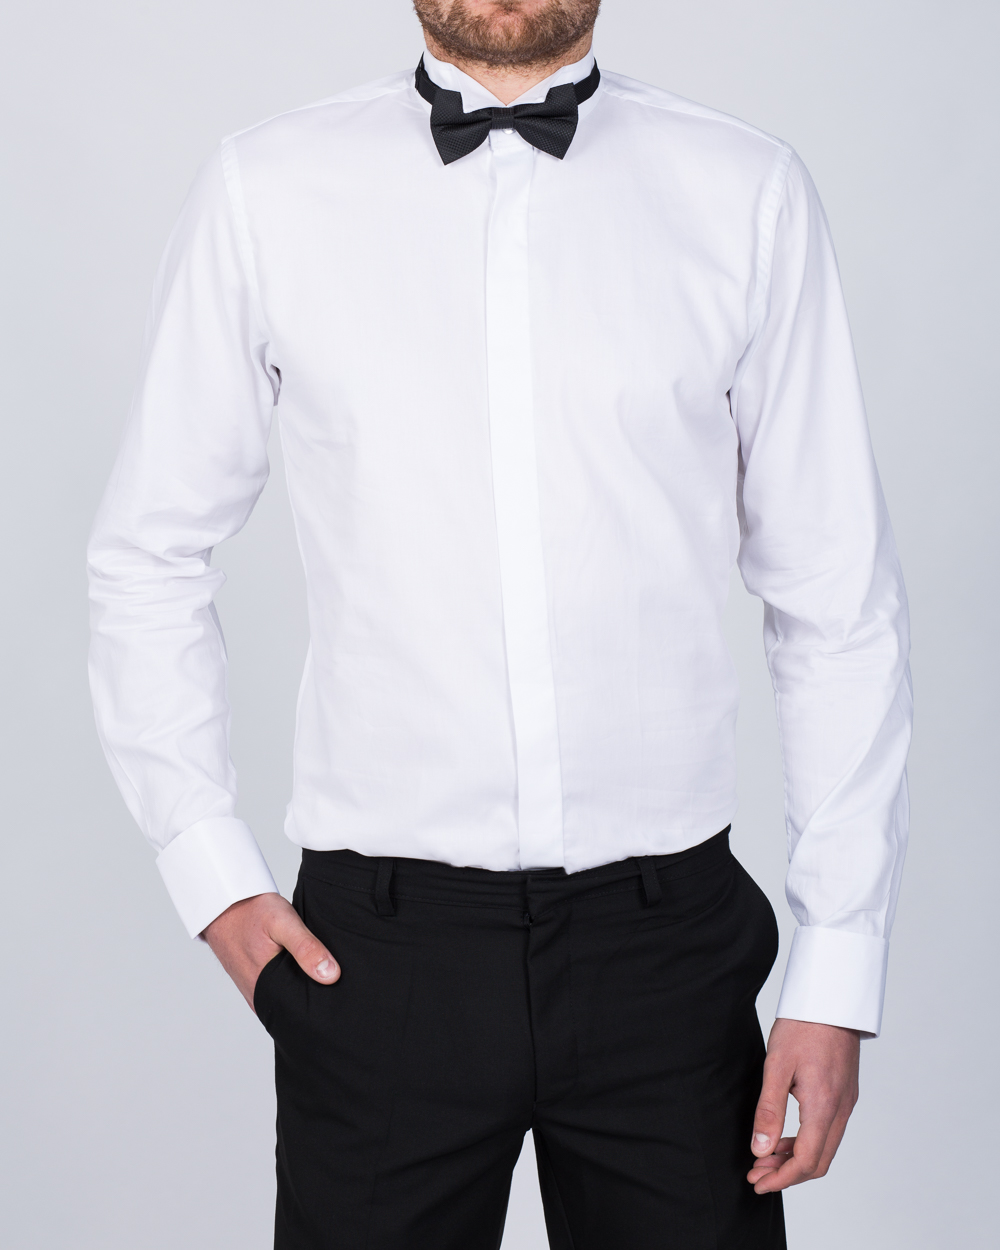 2t Slim Fit Wing Collar Tall Dress Shirt Bow Tie White Extra